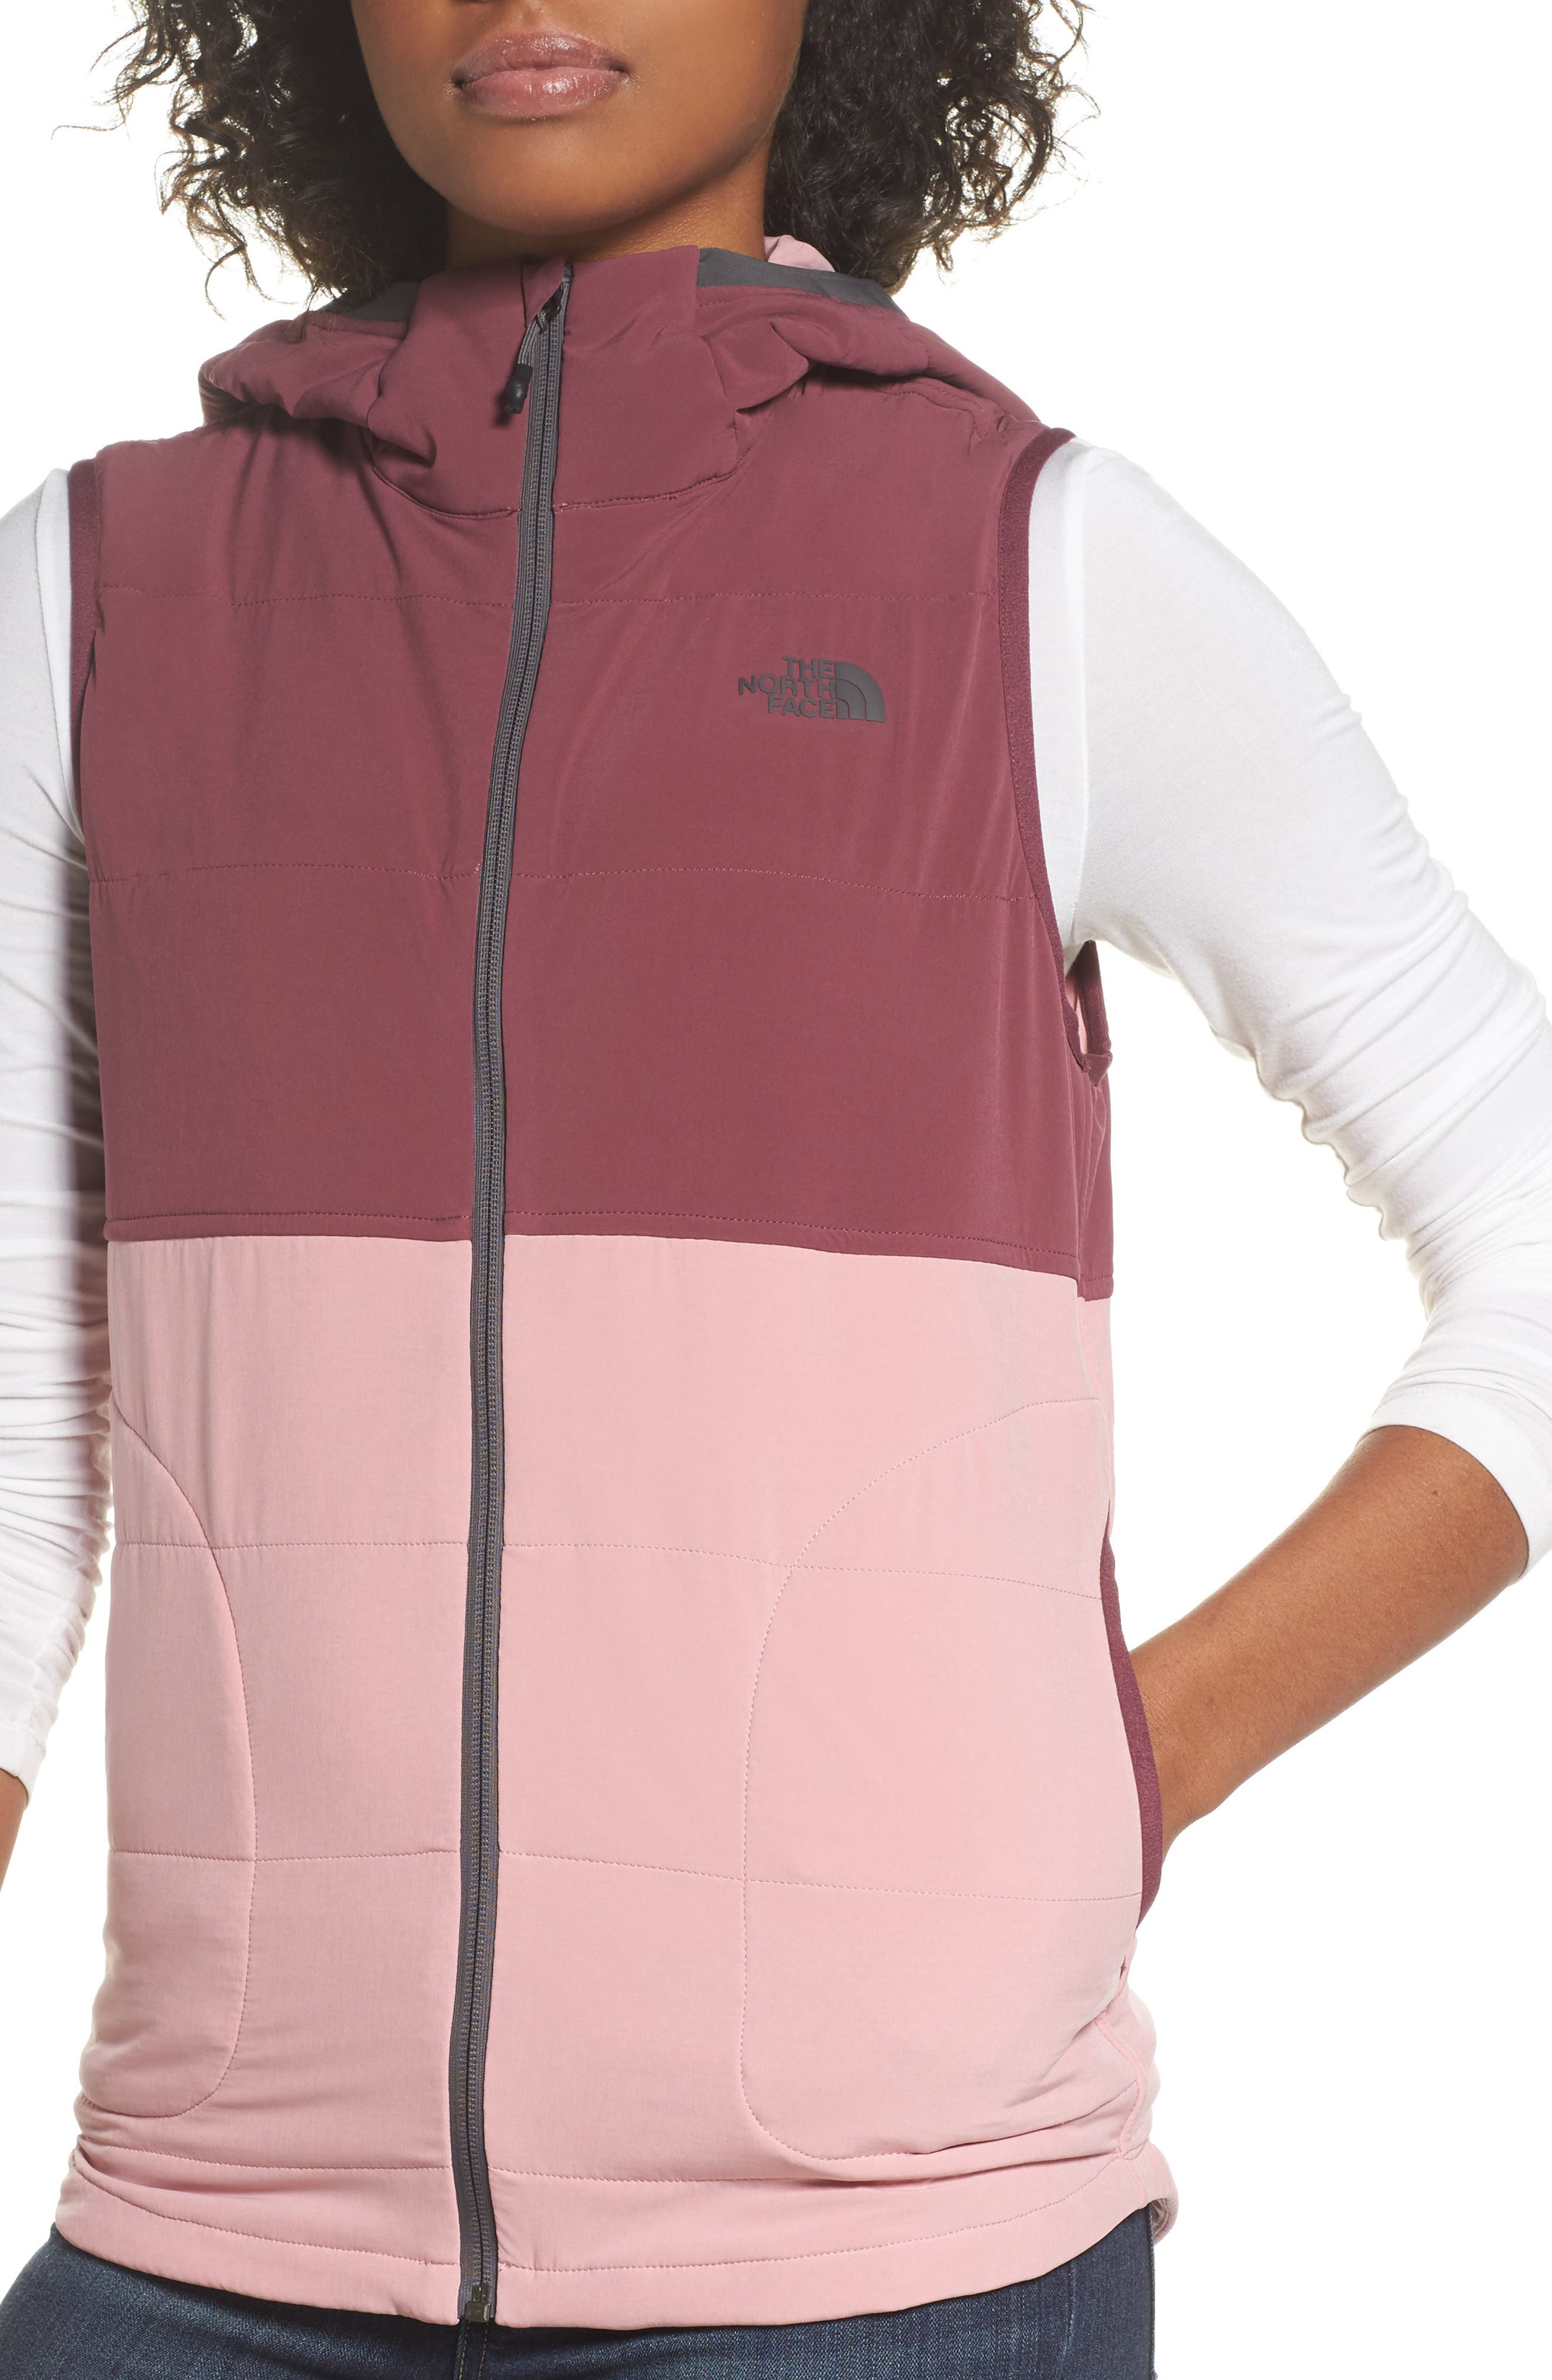 Mountain Sweatshirt Insulated Hooded Vest,                             Alternate thumbnail 16, color,